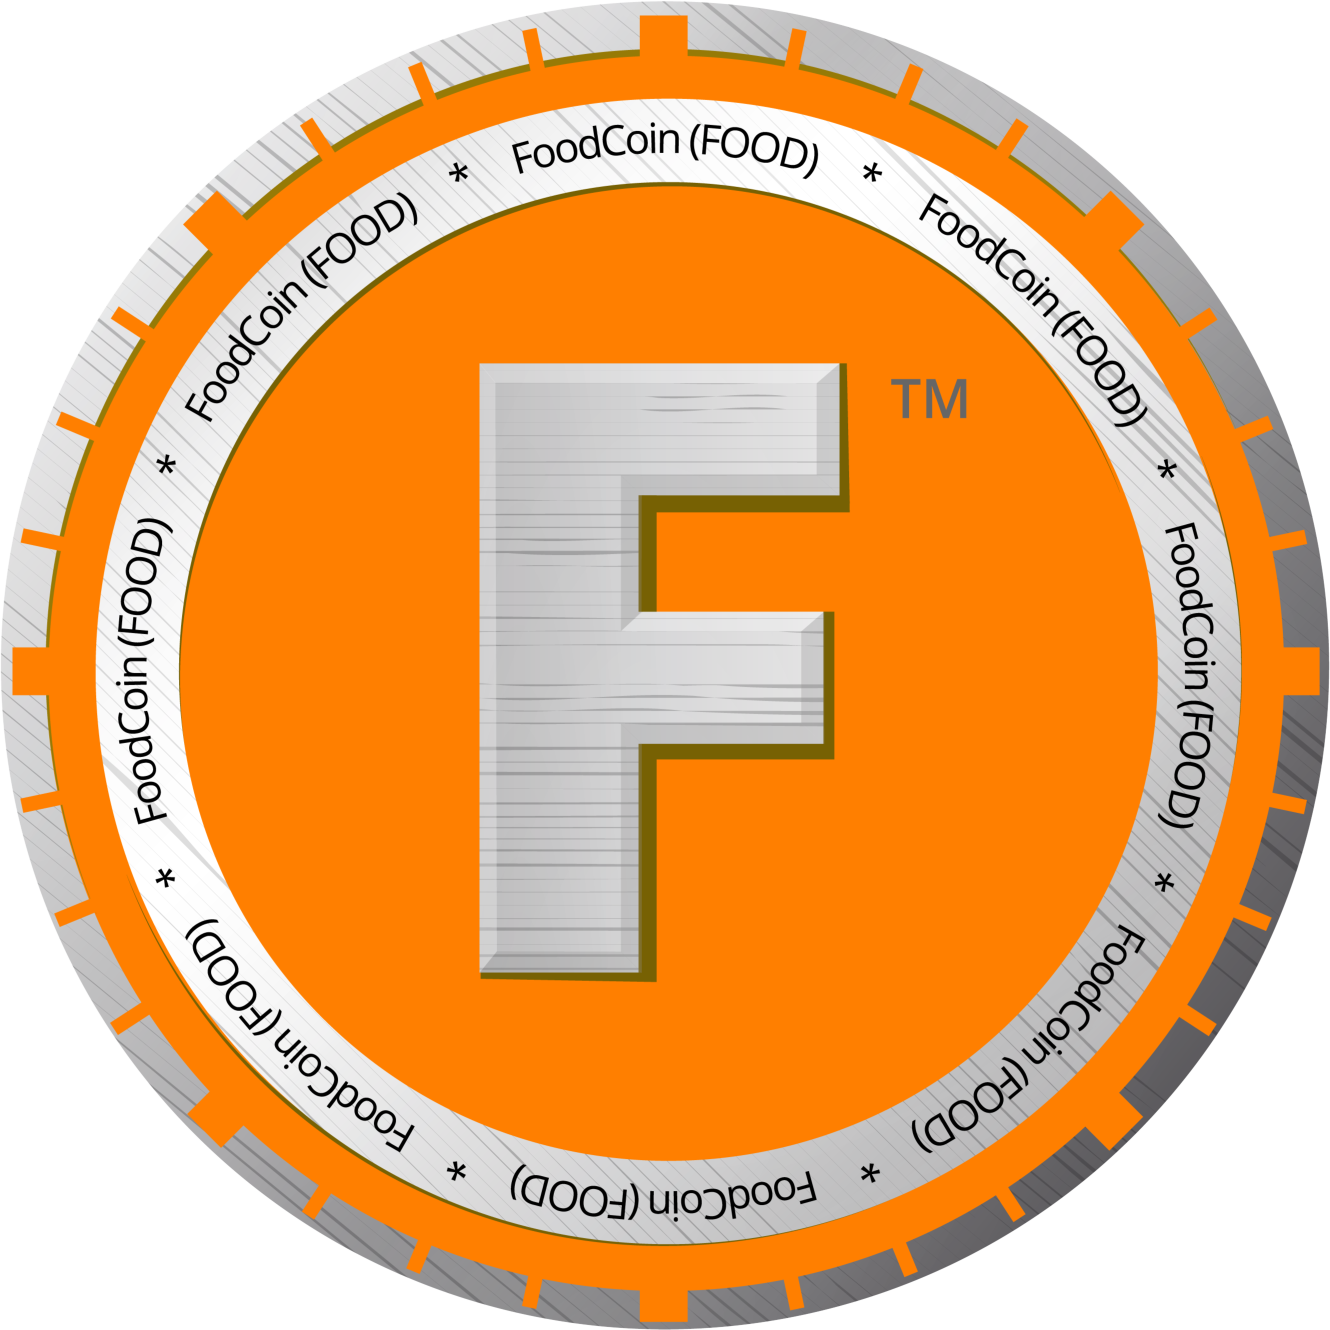 FOODCOIN User